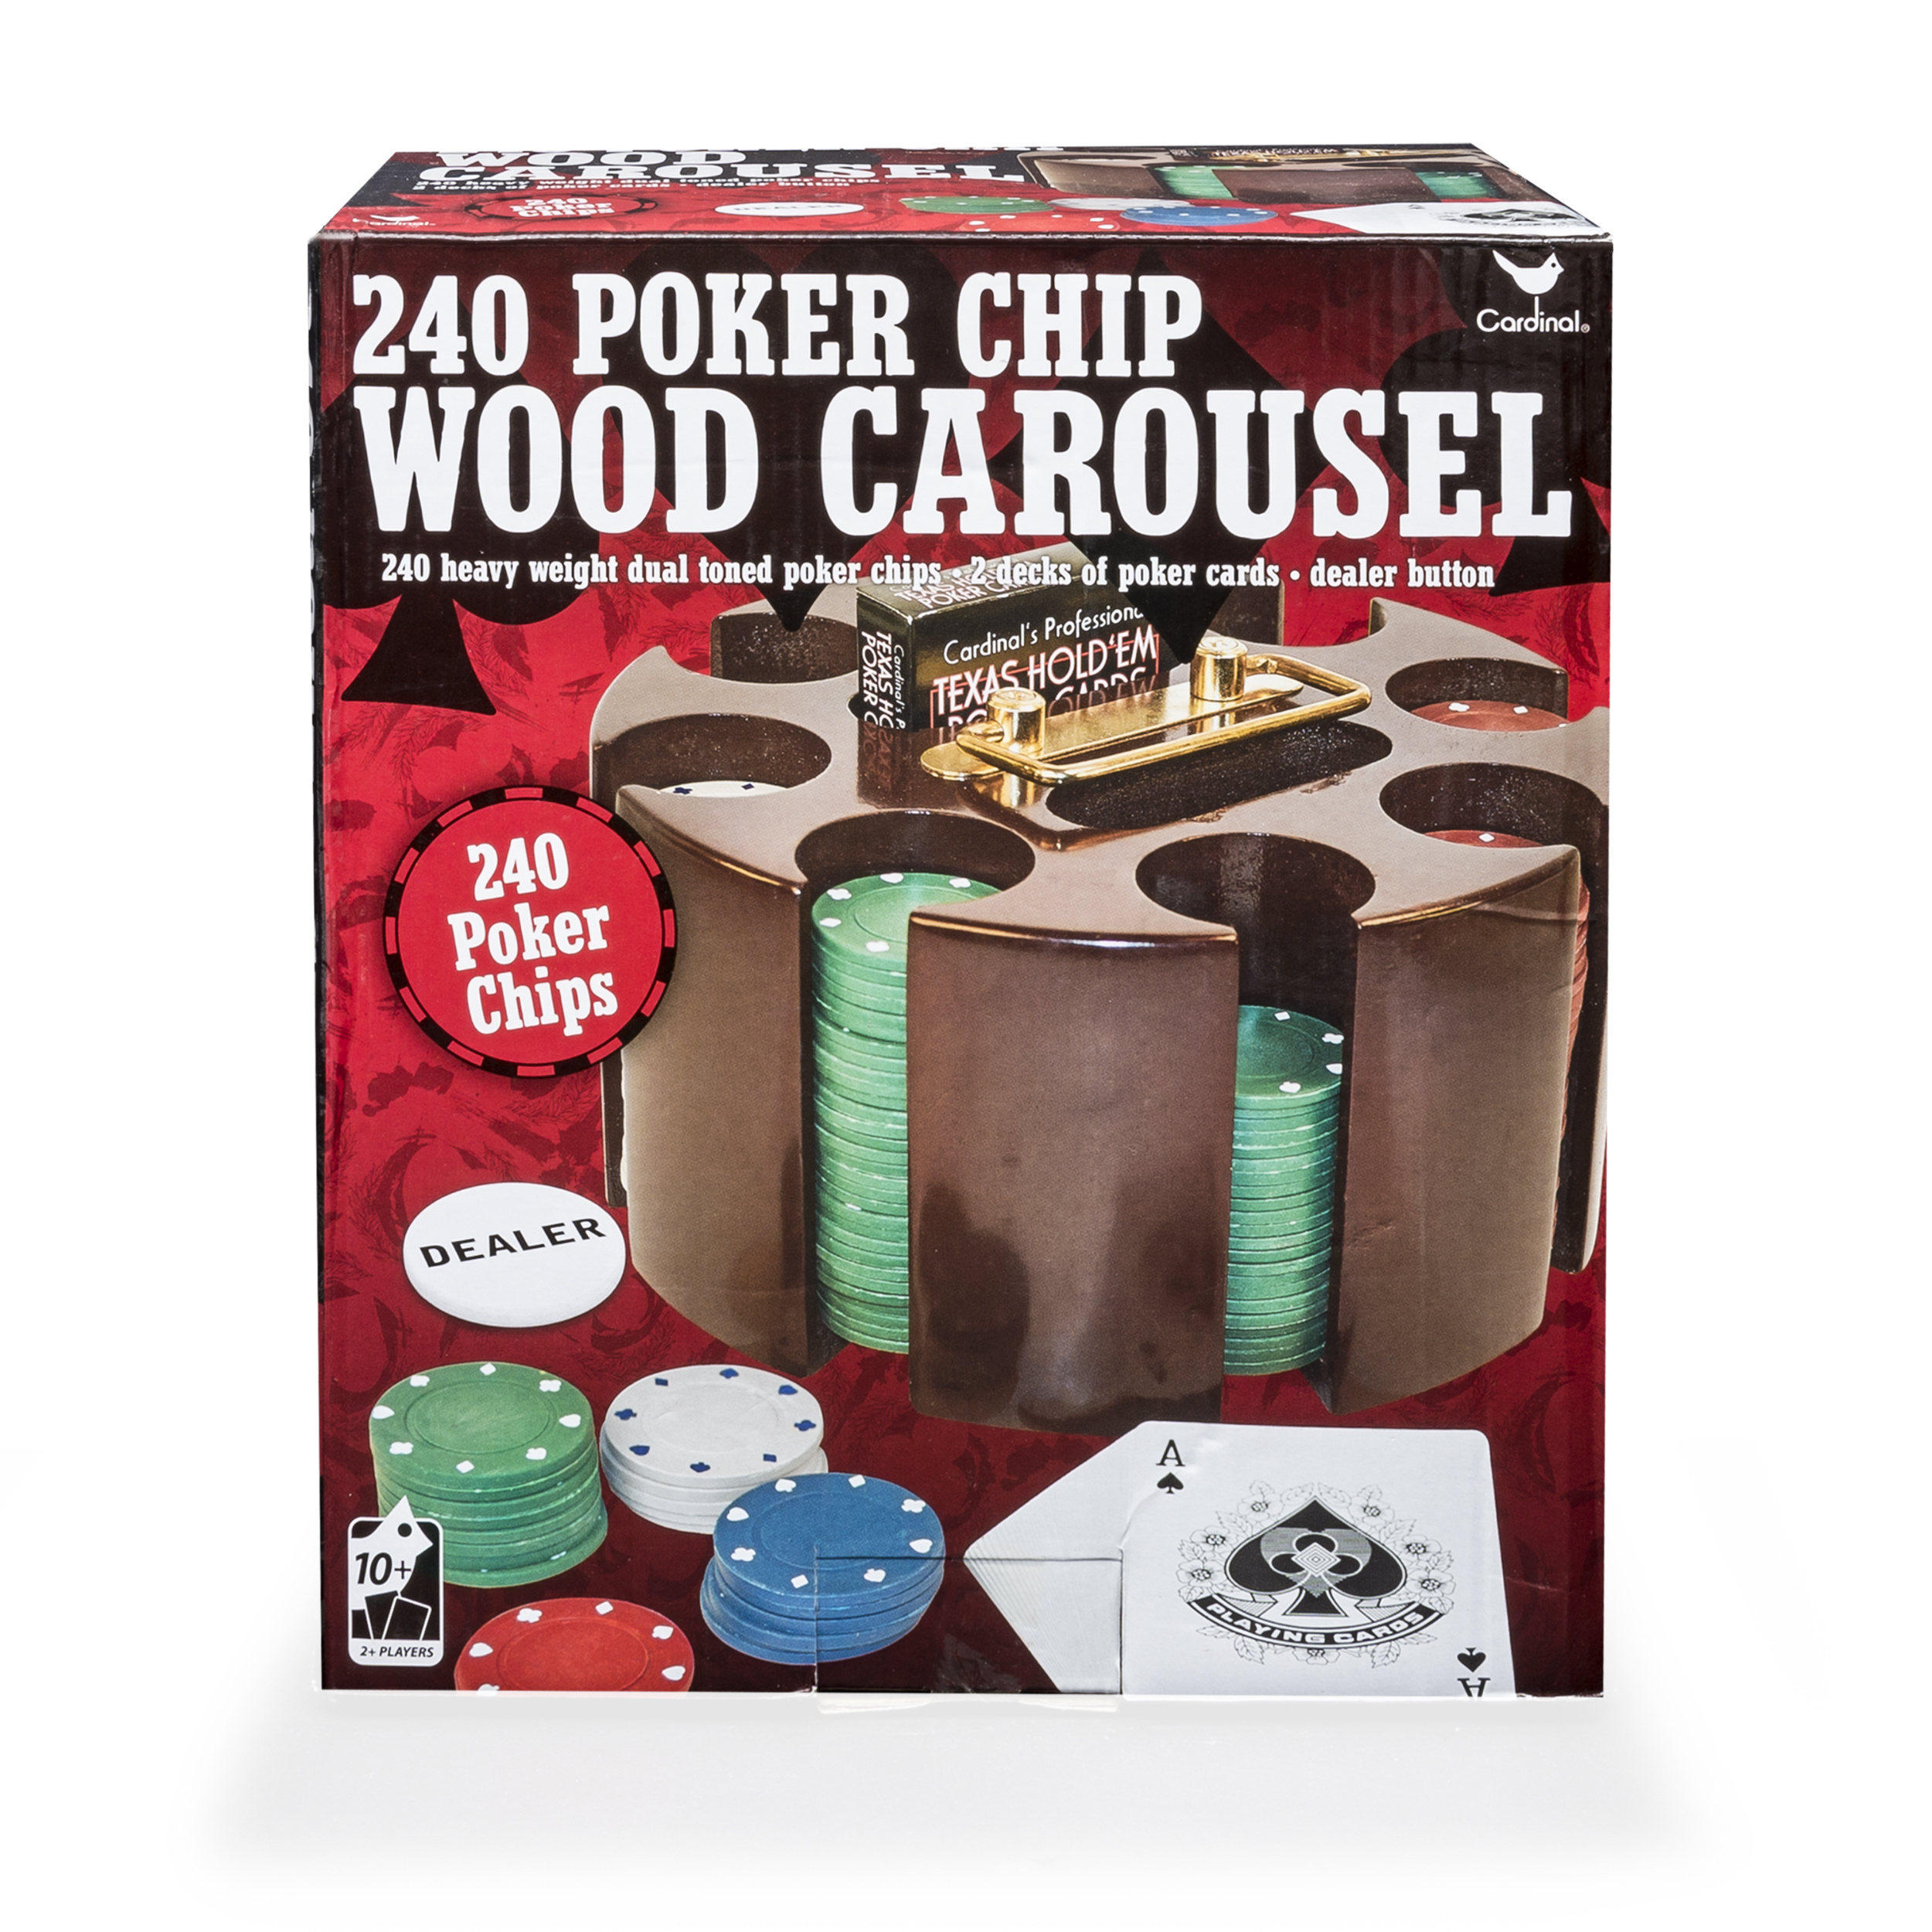 240 Poker Chip Wood Carousel by Spin Master Ltd